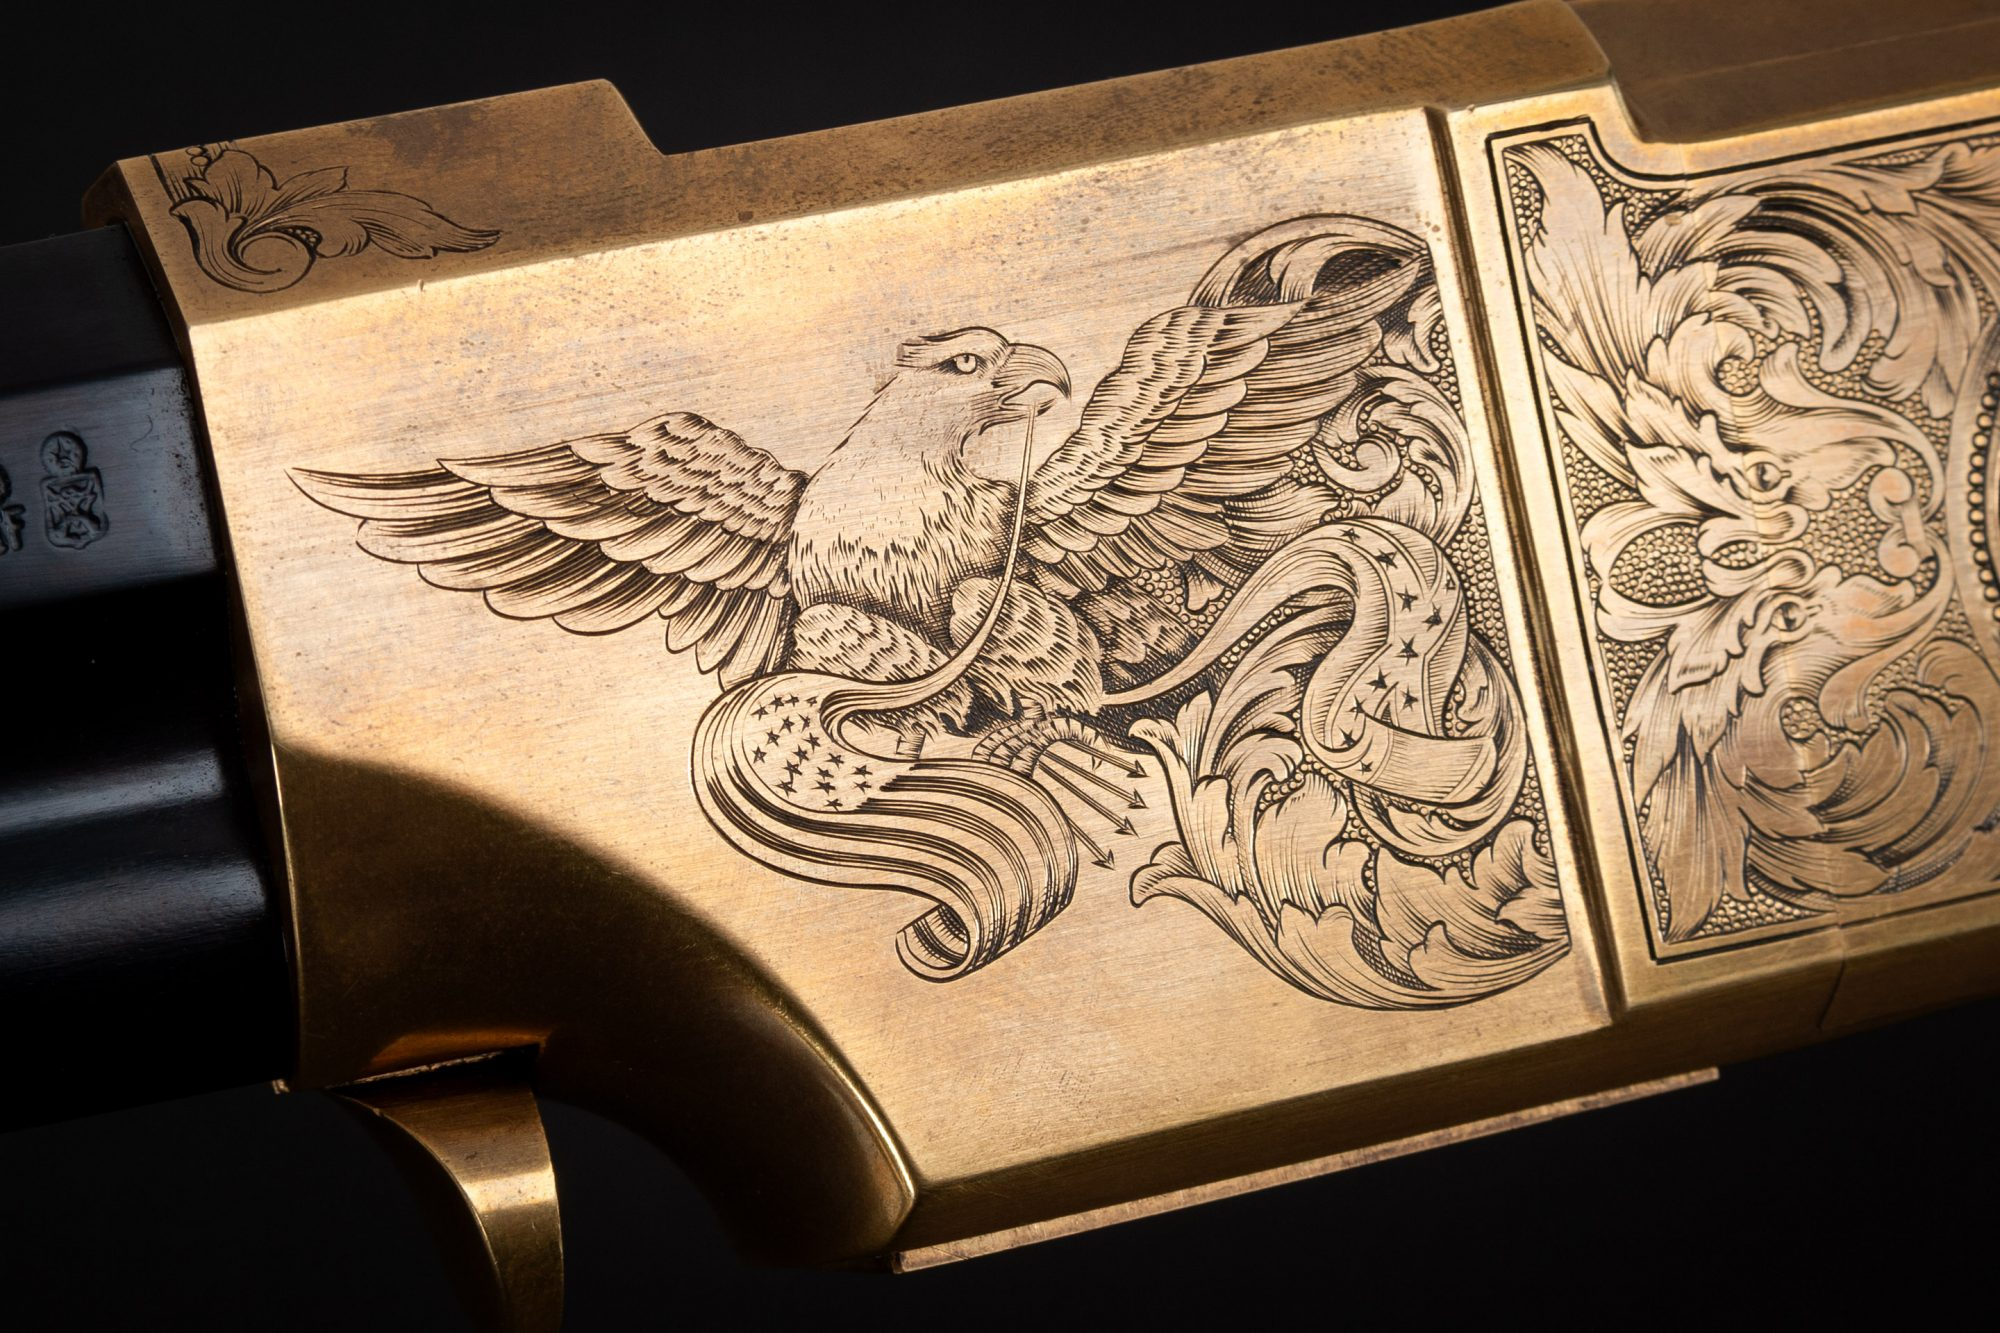 Close-up photo of a Navy Arms A. Uberti 1860 Henry, Engraved by FEGA Master Lee Griffiths, sold as-is by Turnbull Restoration